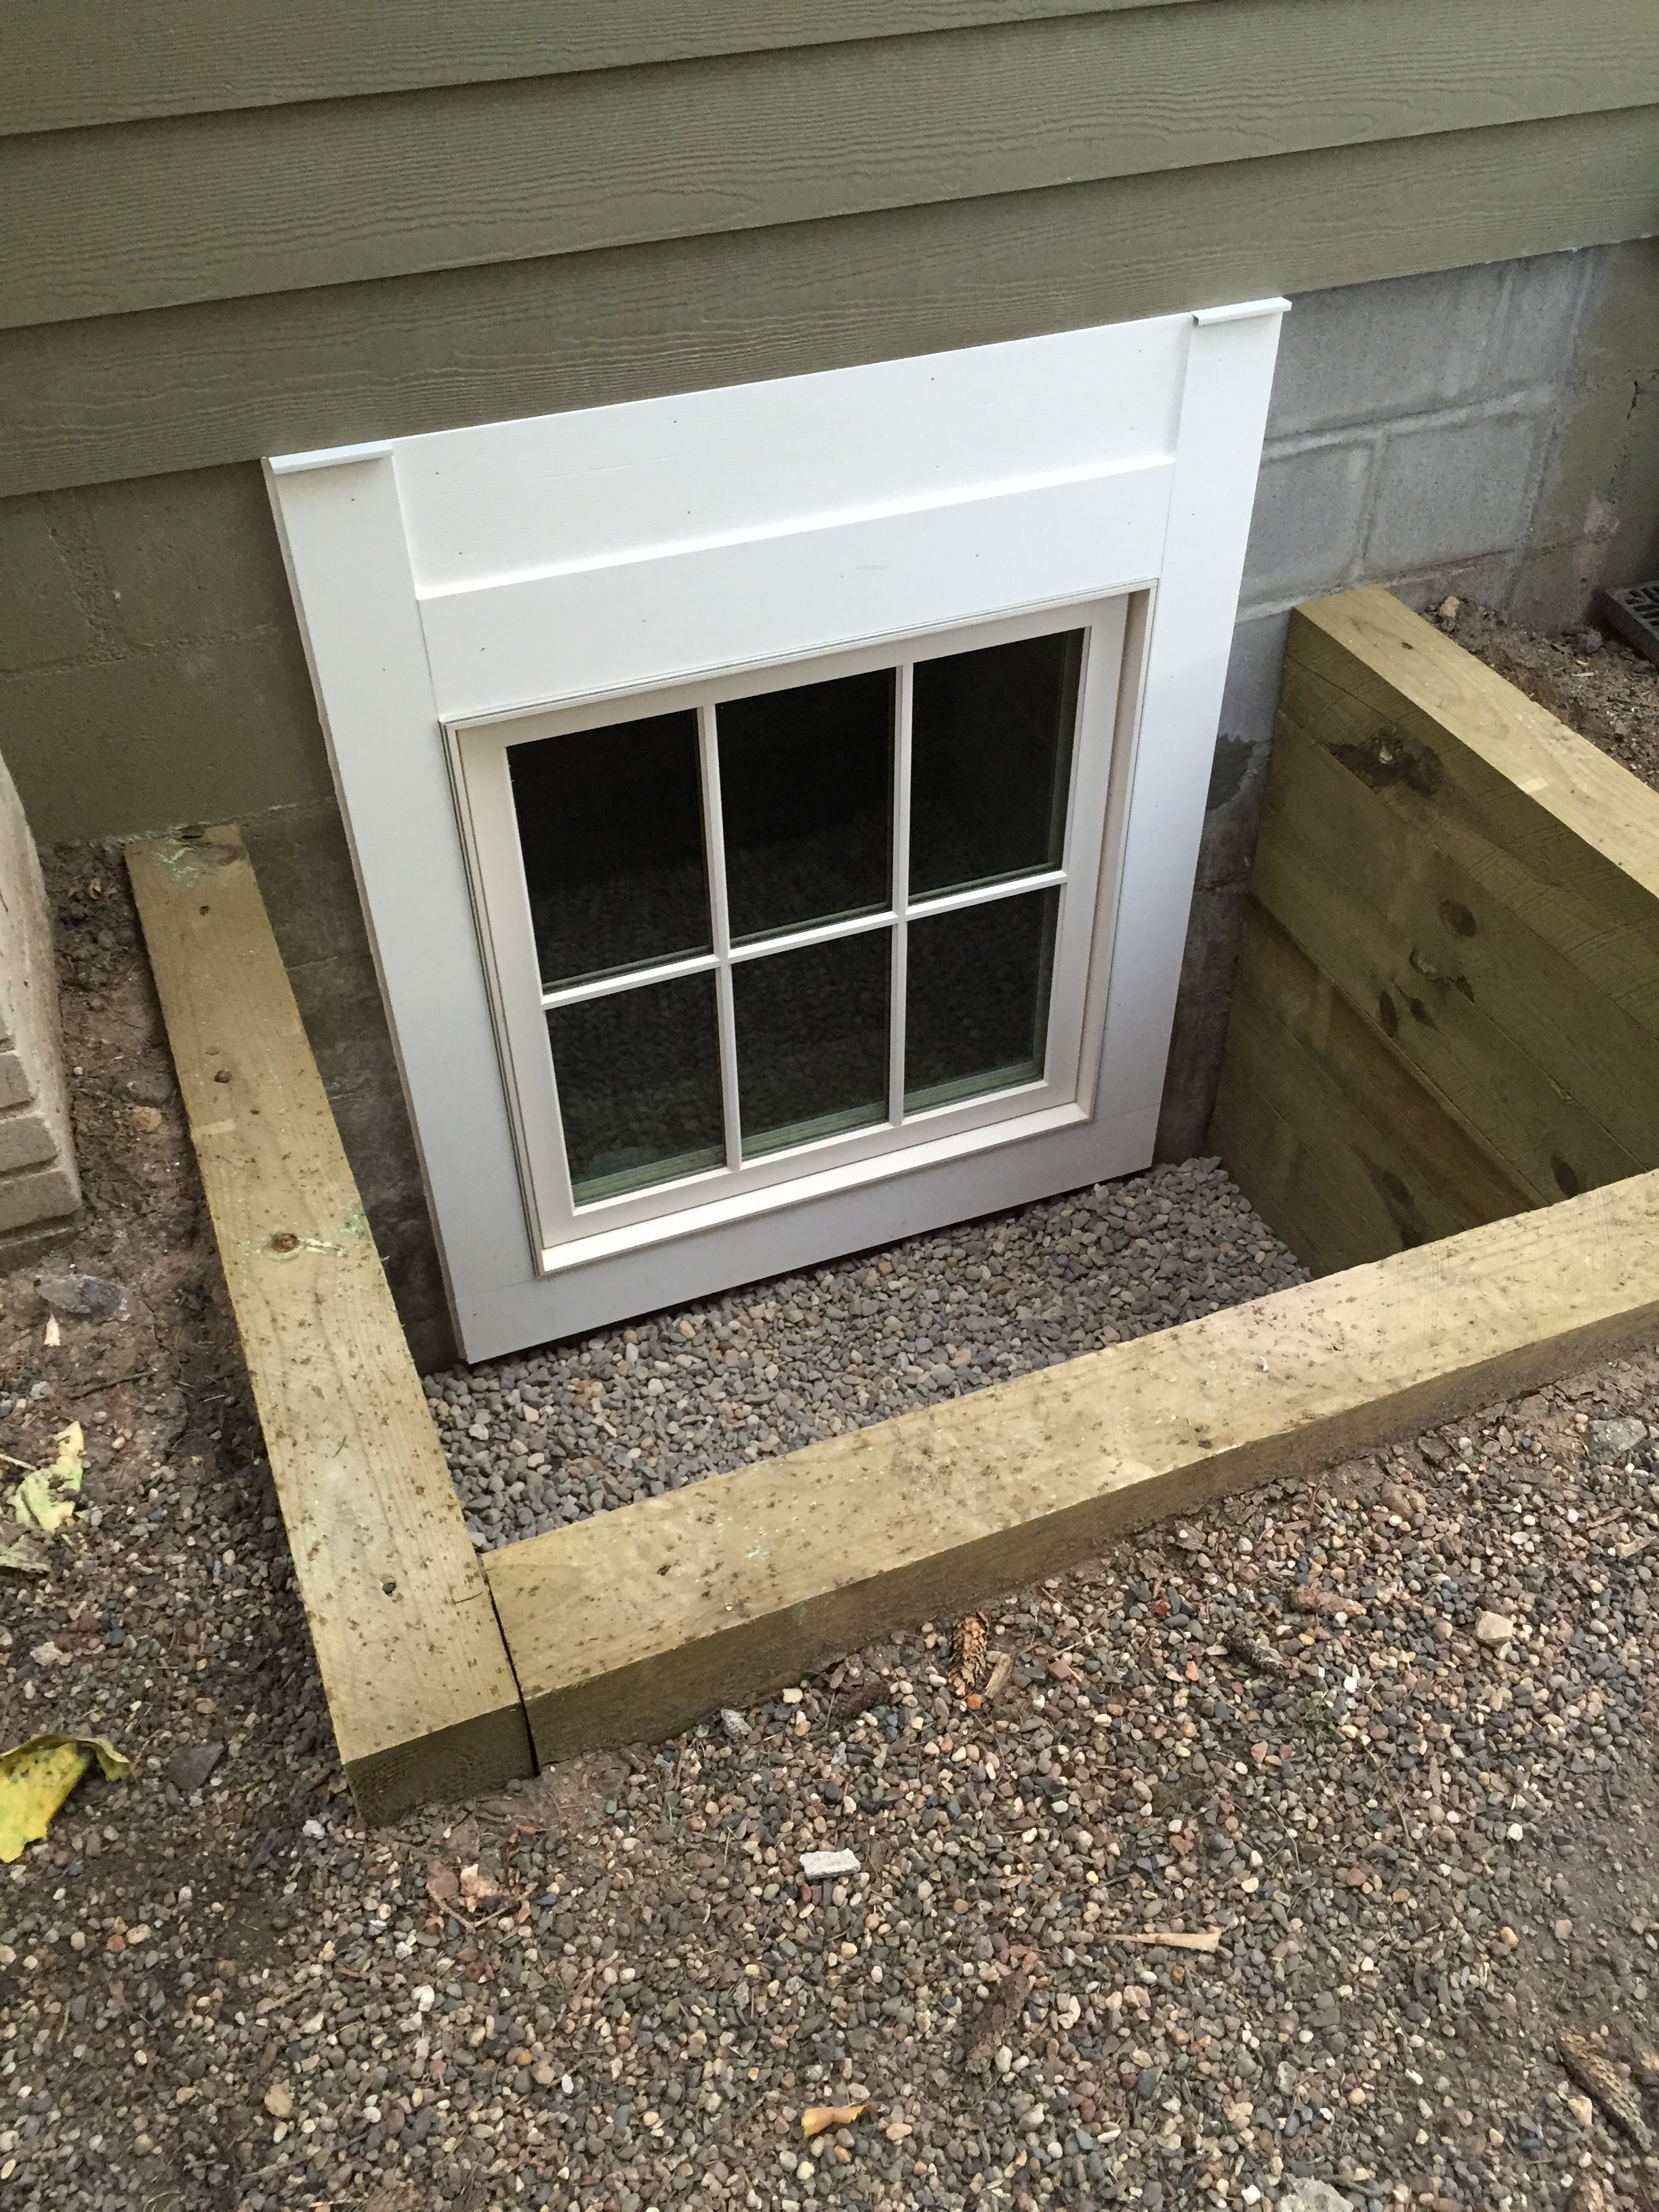 custom size marvin egress to match customers existing egress window rh pinterest com